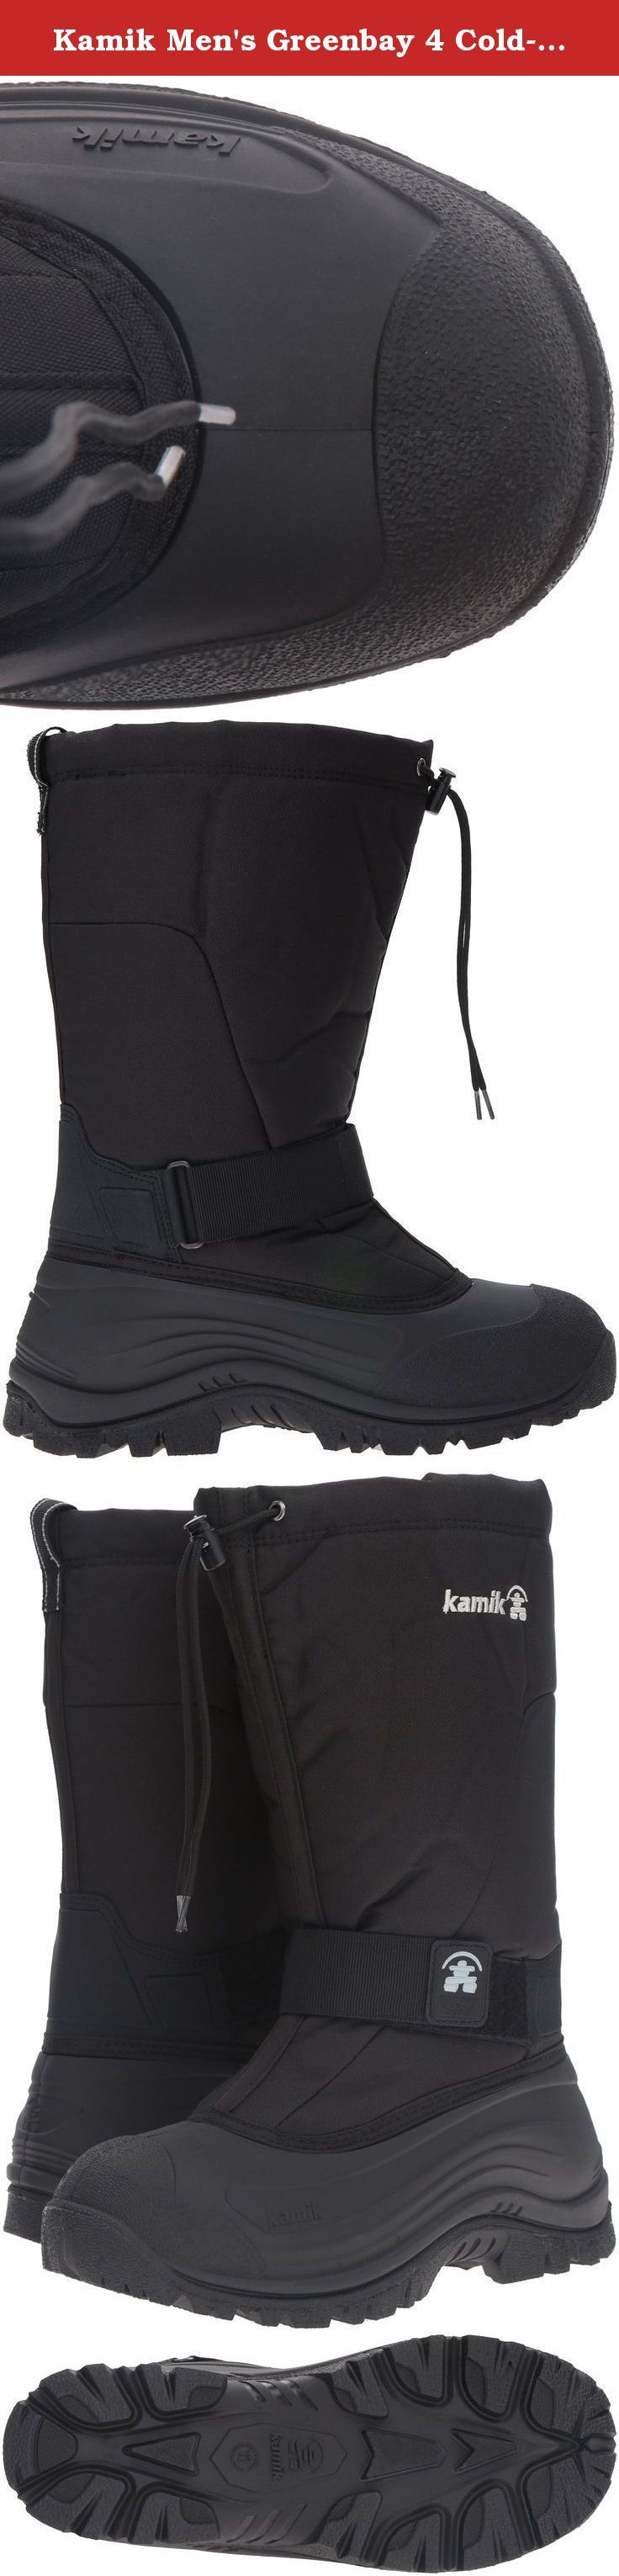 """Kamik Men's Greenbay 4 Cold-Weather Boot. Kamik Pac Boots for the whole family. Water resistant, warm and built to last. Kamik: an Inuit word meaning """"foot covering."""" Kamik Boots Company has operated over 100 years and, much like the Inuit, they know a thing or two about staying warm in the deep freeze. Waterproof, flexible Duration 600 nylon uppers; Lace lock snow collar; Self-cleaning PULSE Rubber HE outsole; Removable Thermal Guard moisture-wicking lining; Rear pull-on loop; Rated to…"""